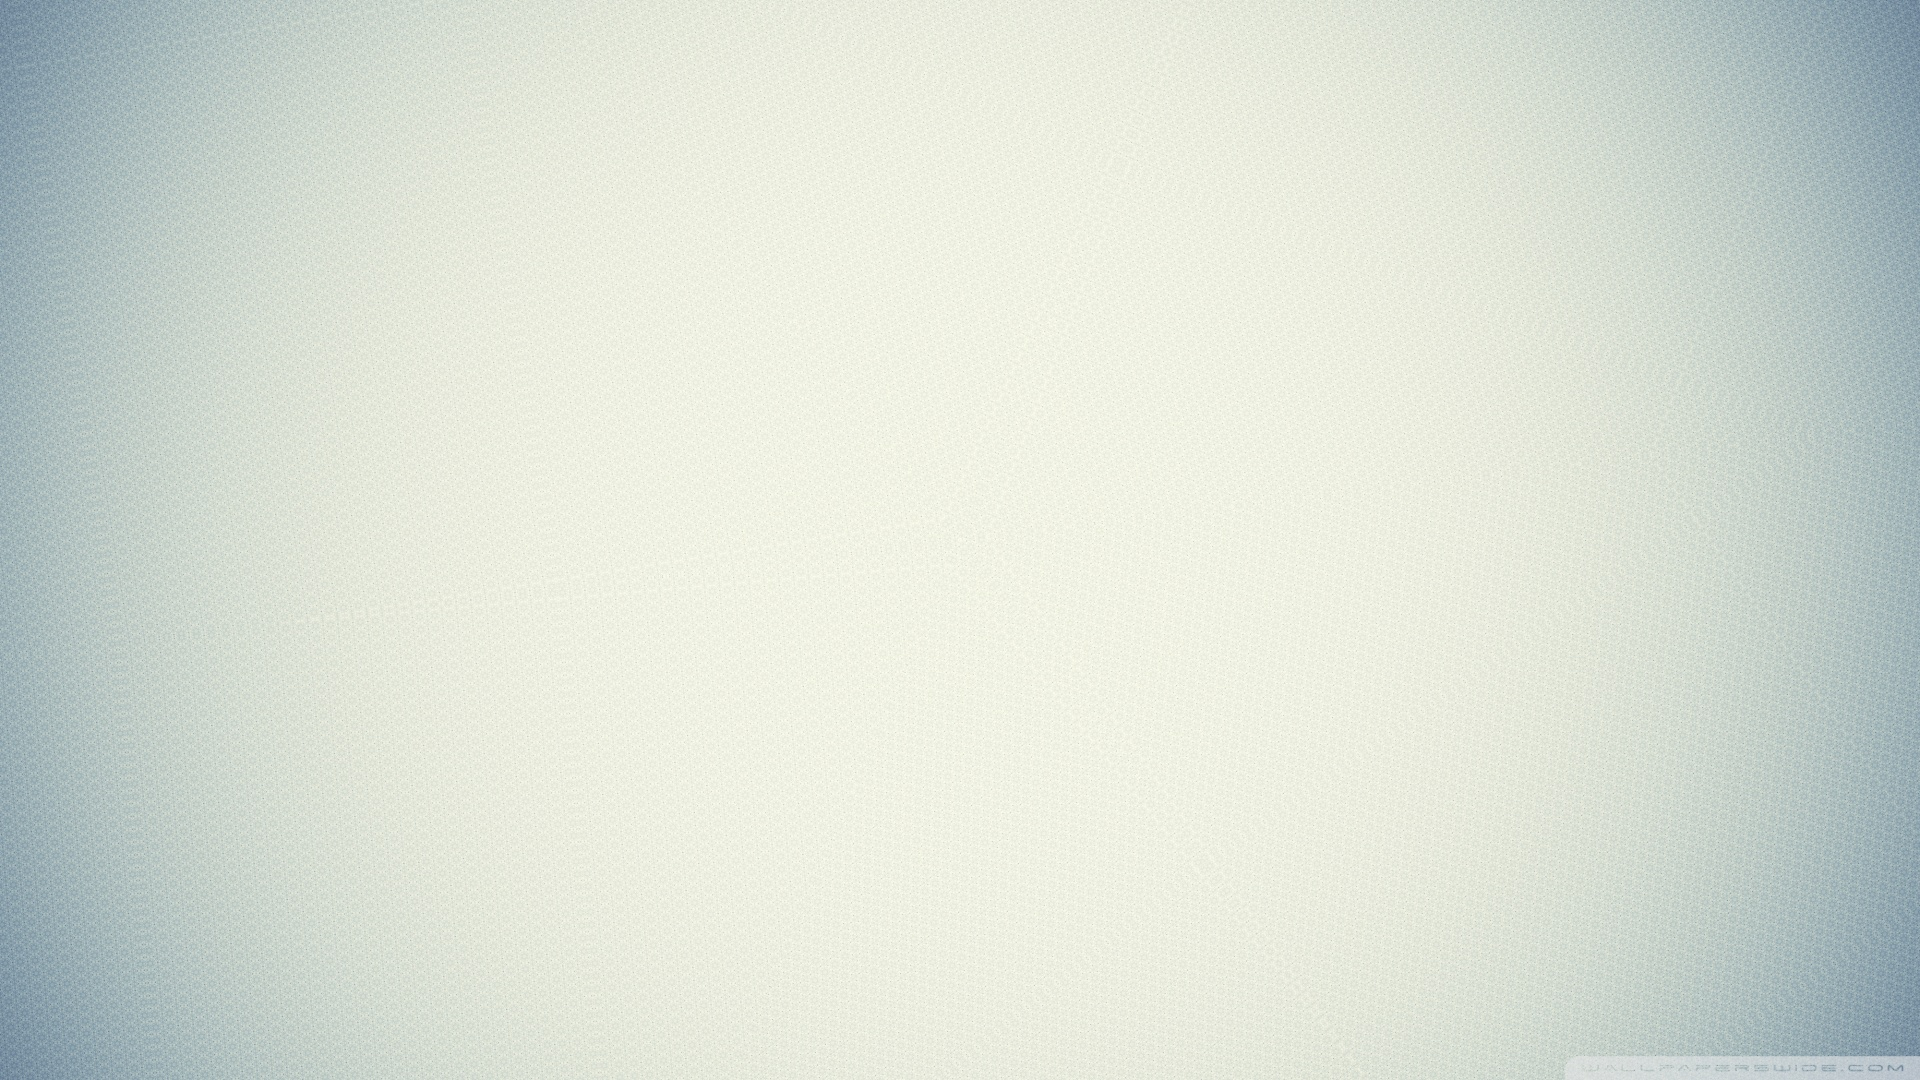 Light Grey Wallpaper : Grey Background Wallpaper - WallpaperSafari